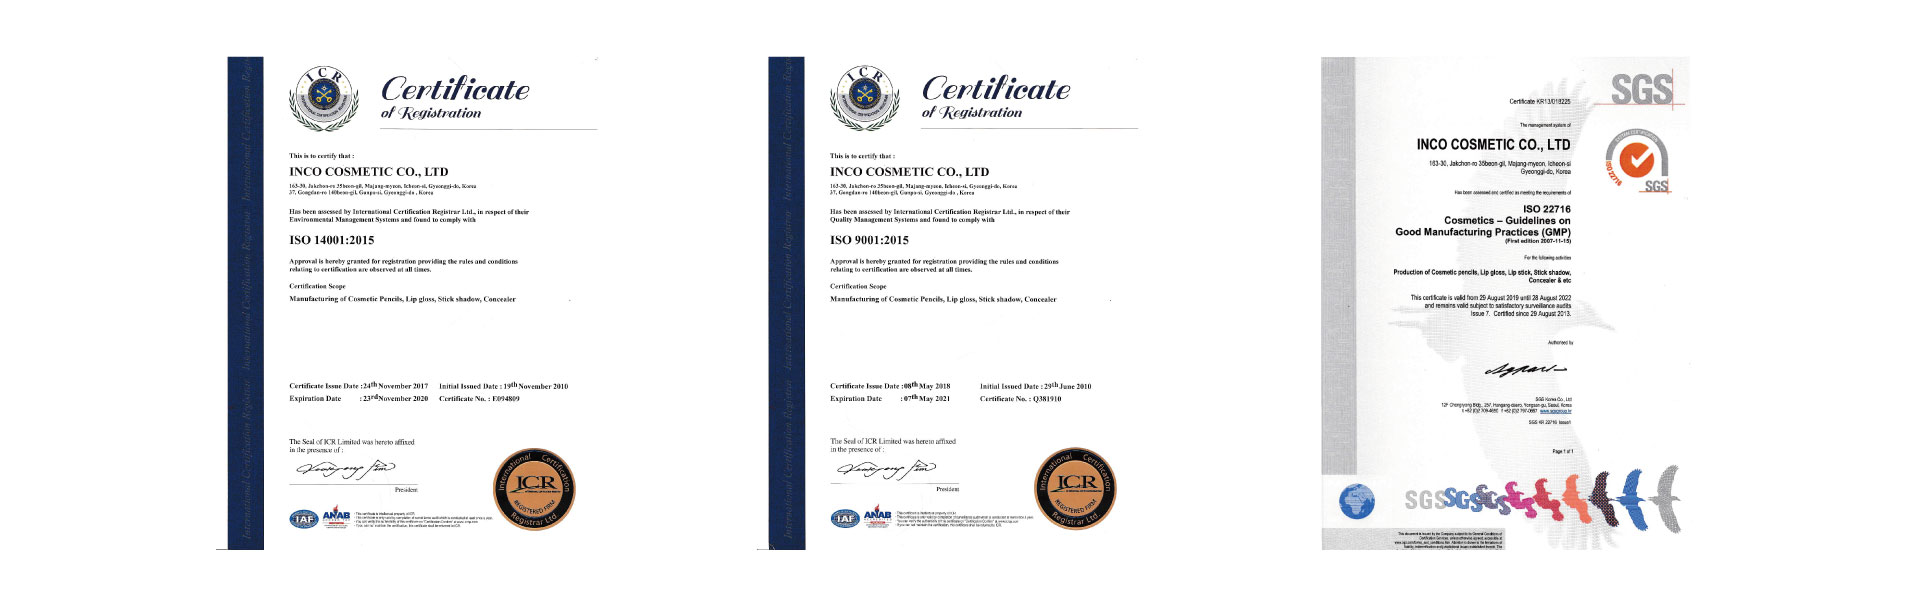 Certificate of ISO and SGS